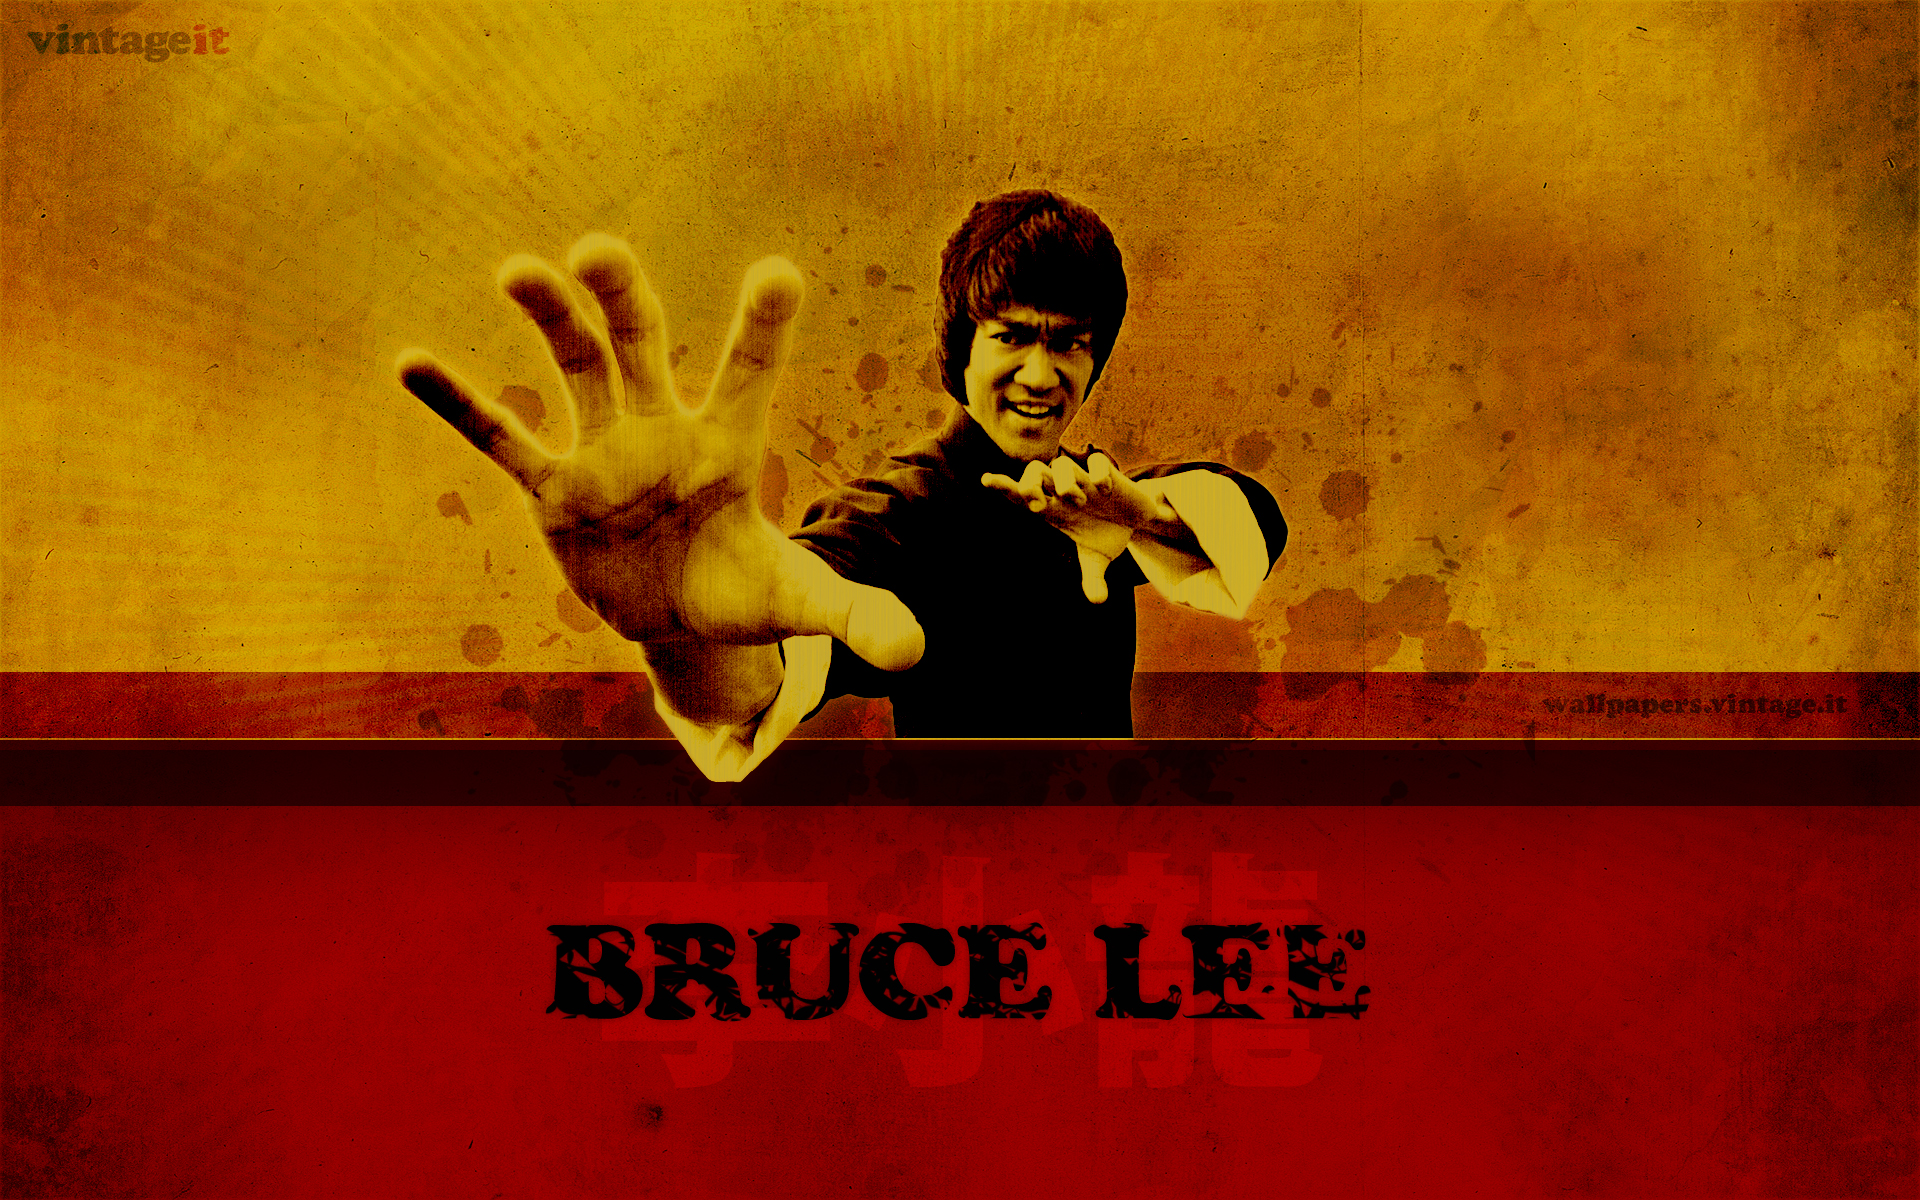 1920x1200 - Bruce Lee Wallpapers 27